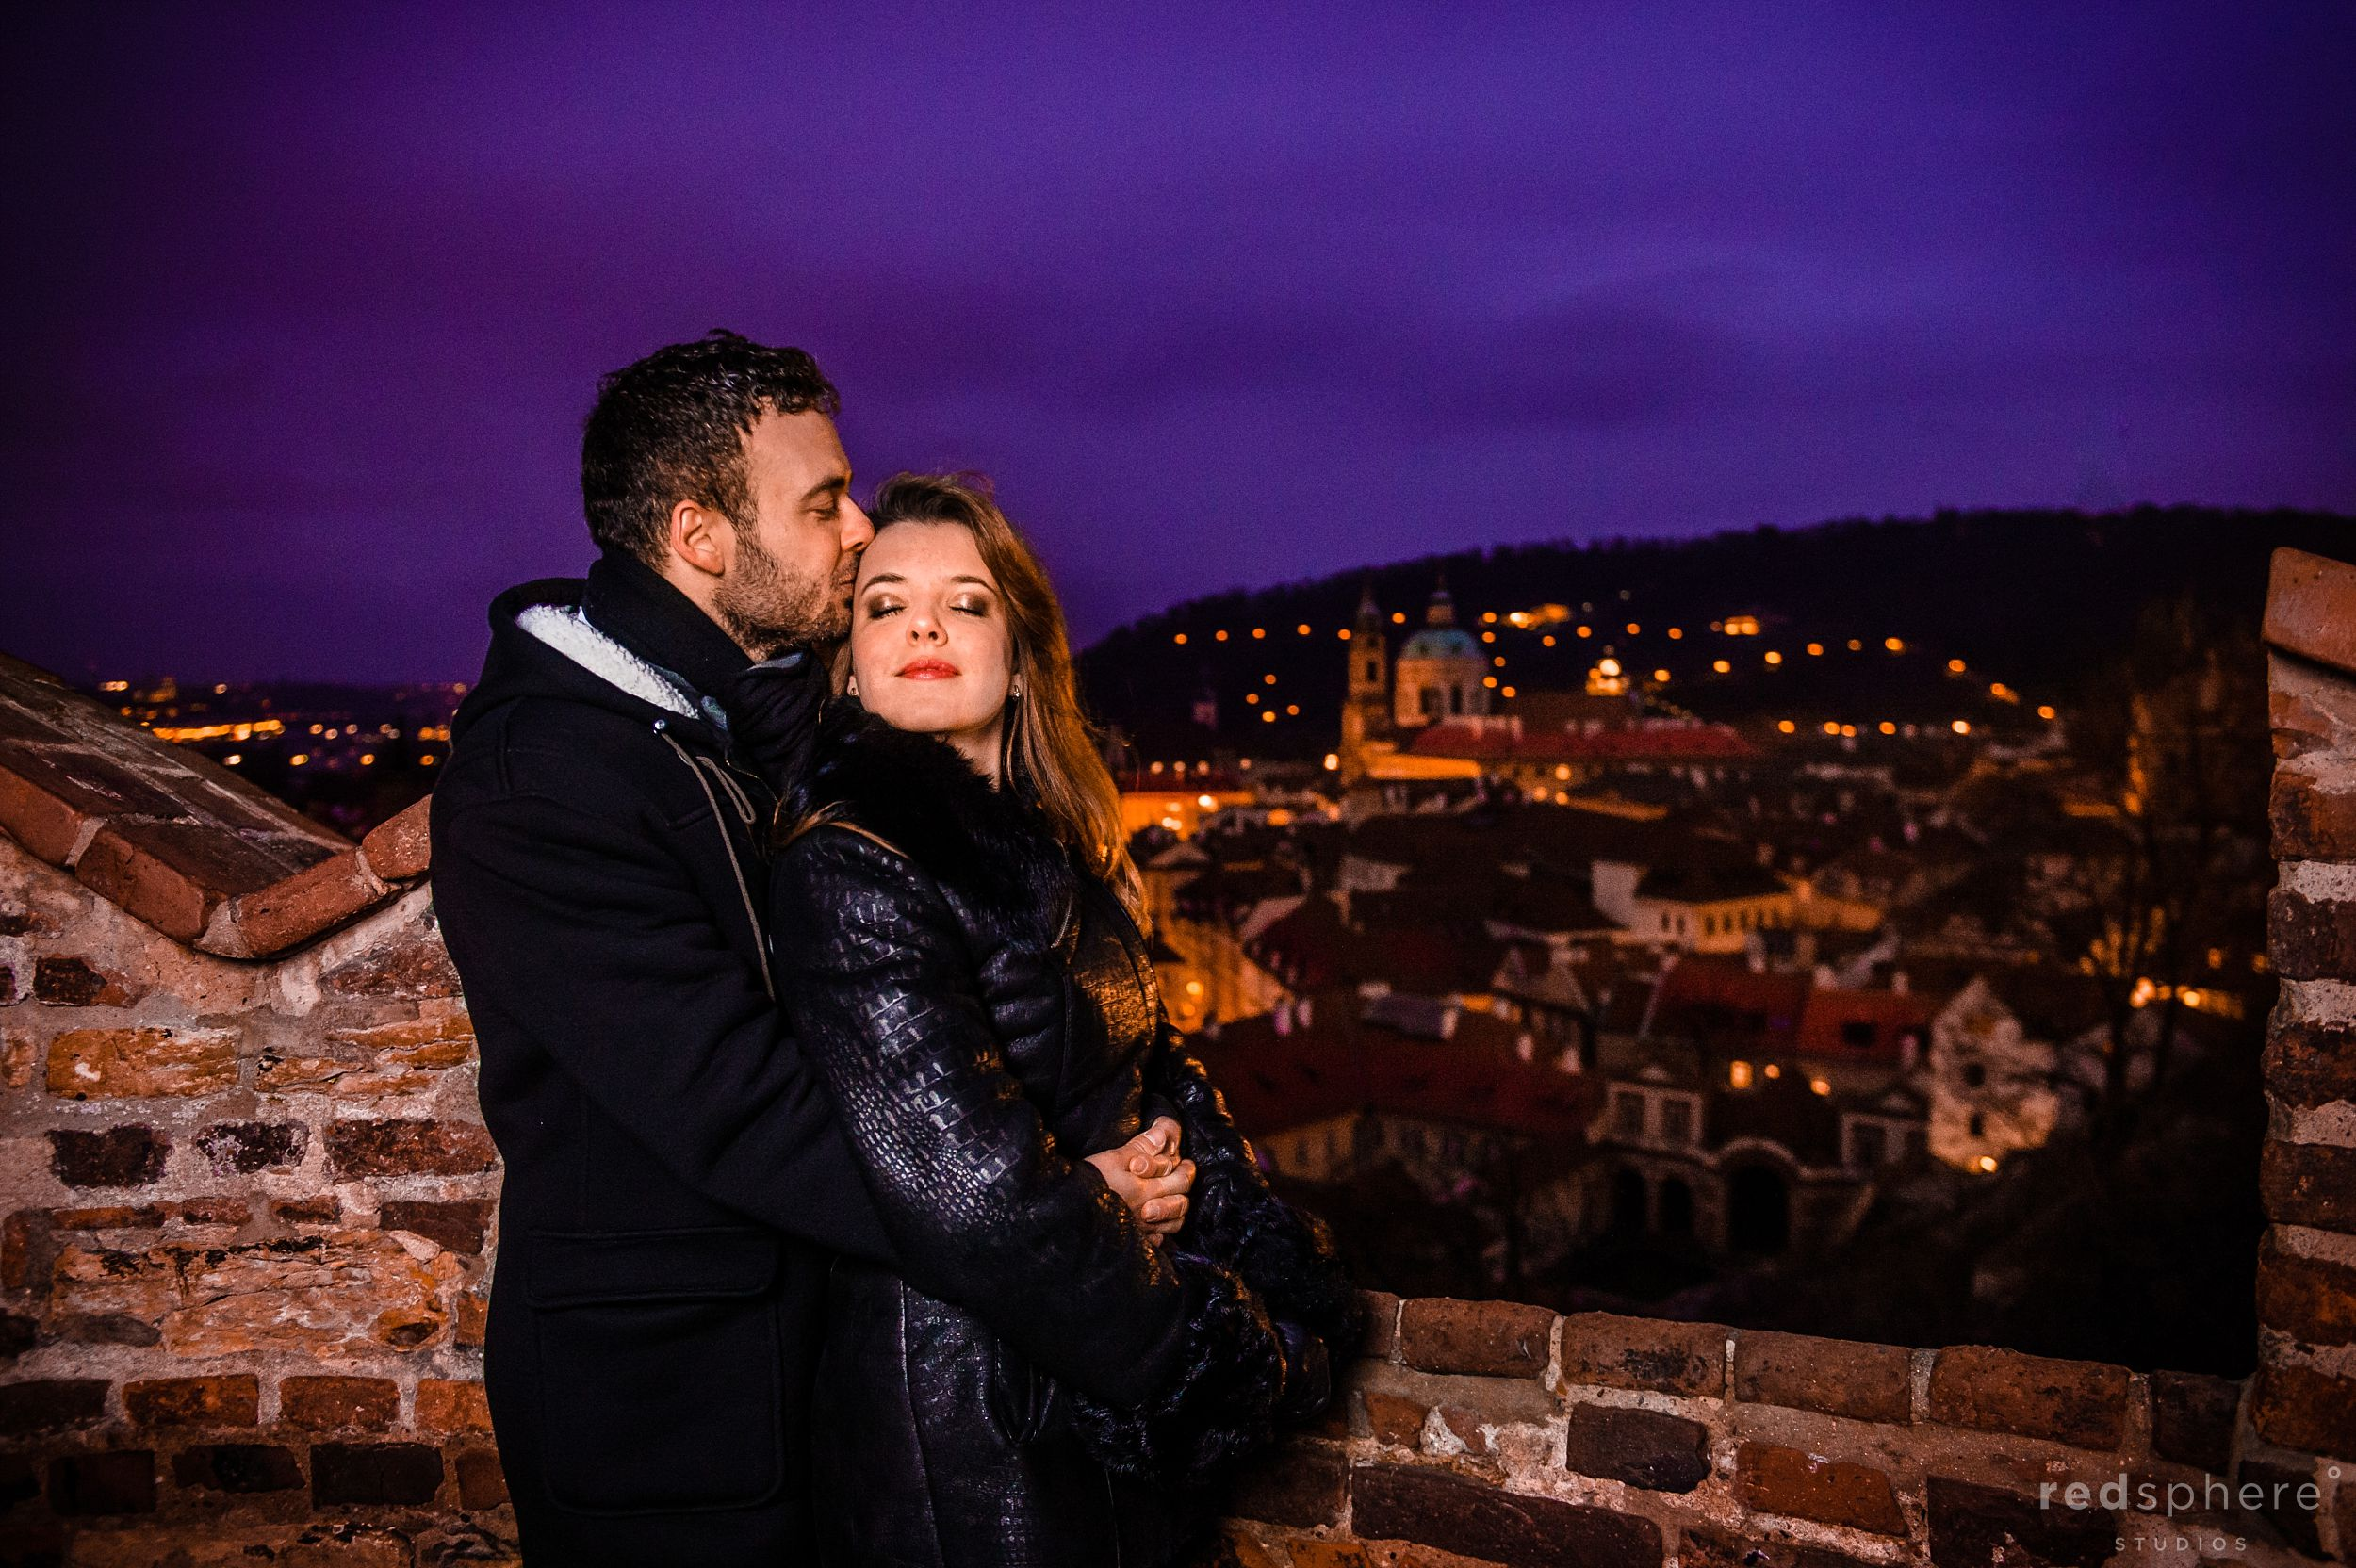 Couple Embrace During Winter Night at Prague Castle Engagement